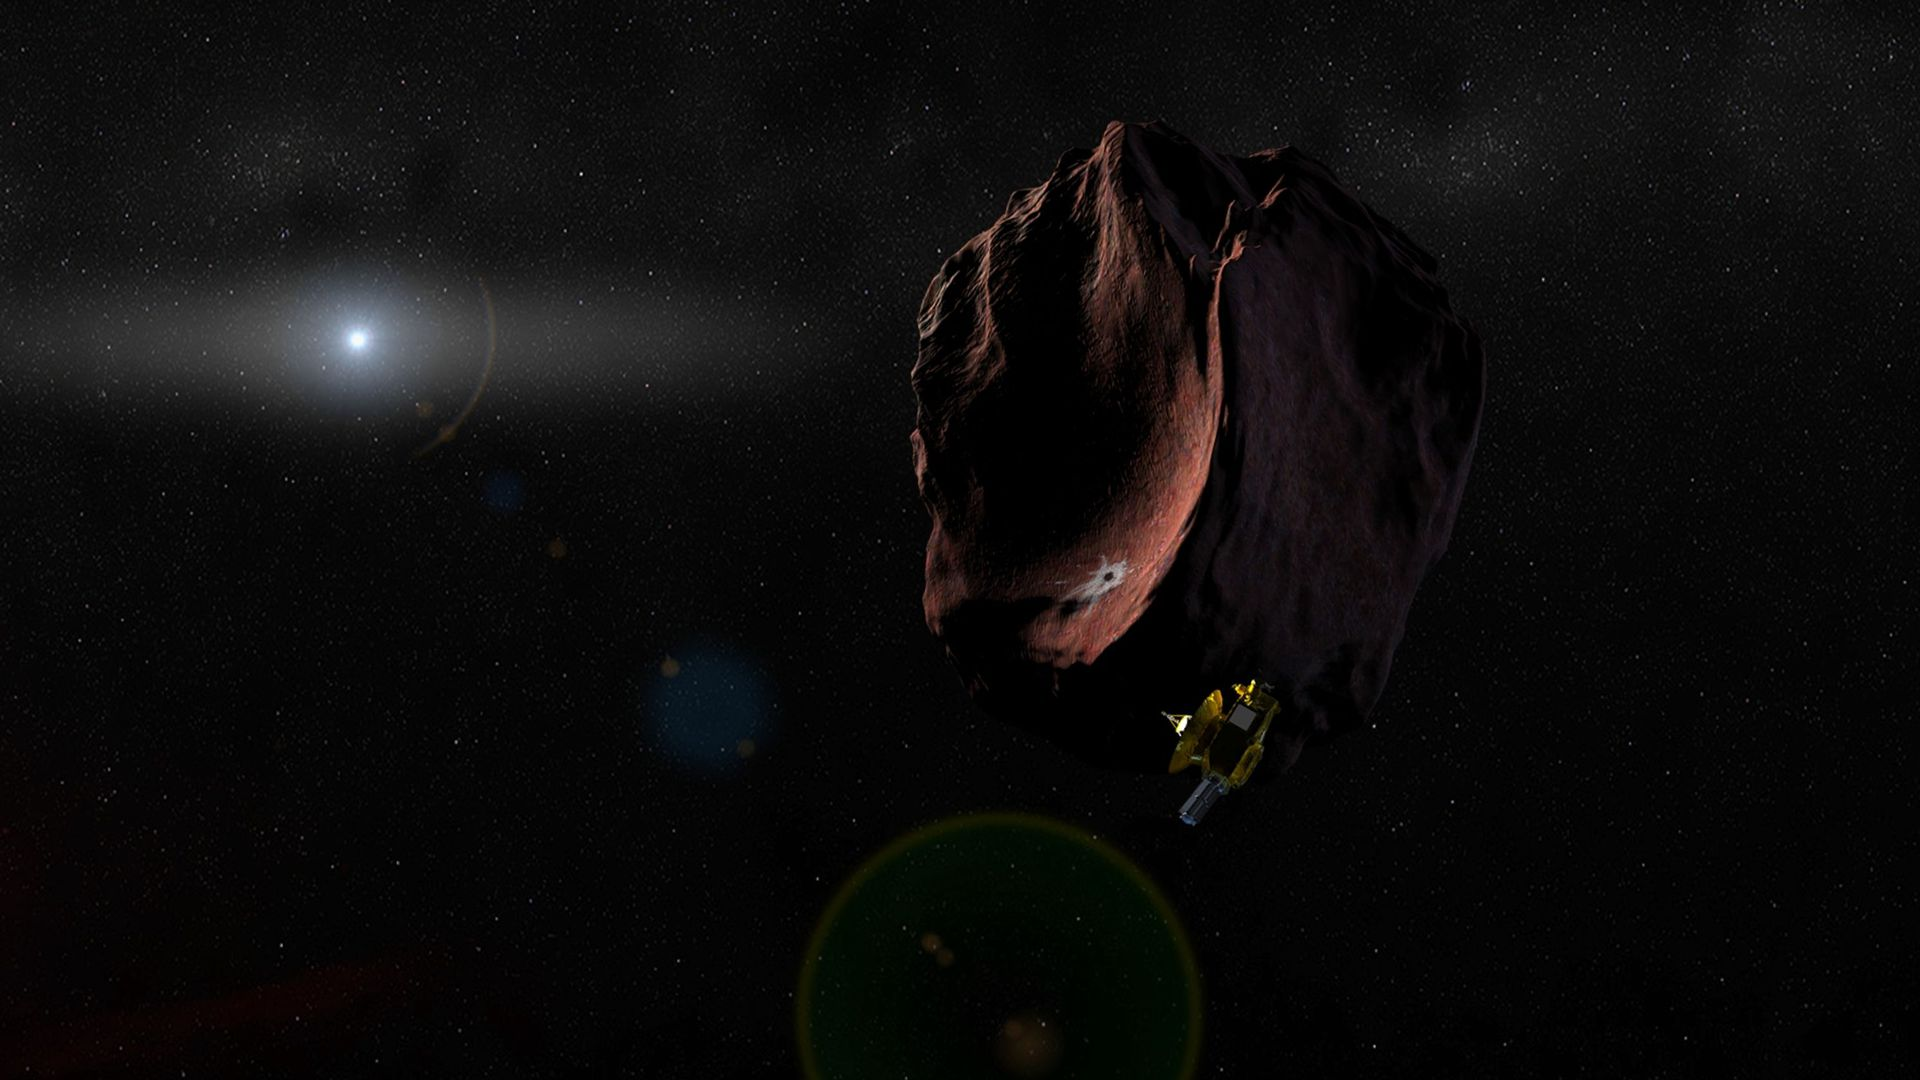 NASA's New Horizons plans a second extended mission, looking to the Kuiper Belt